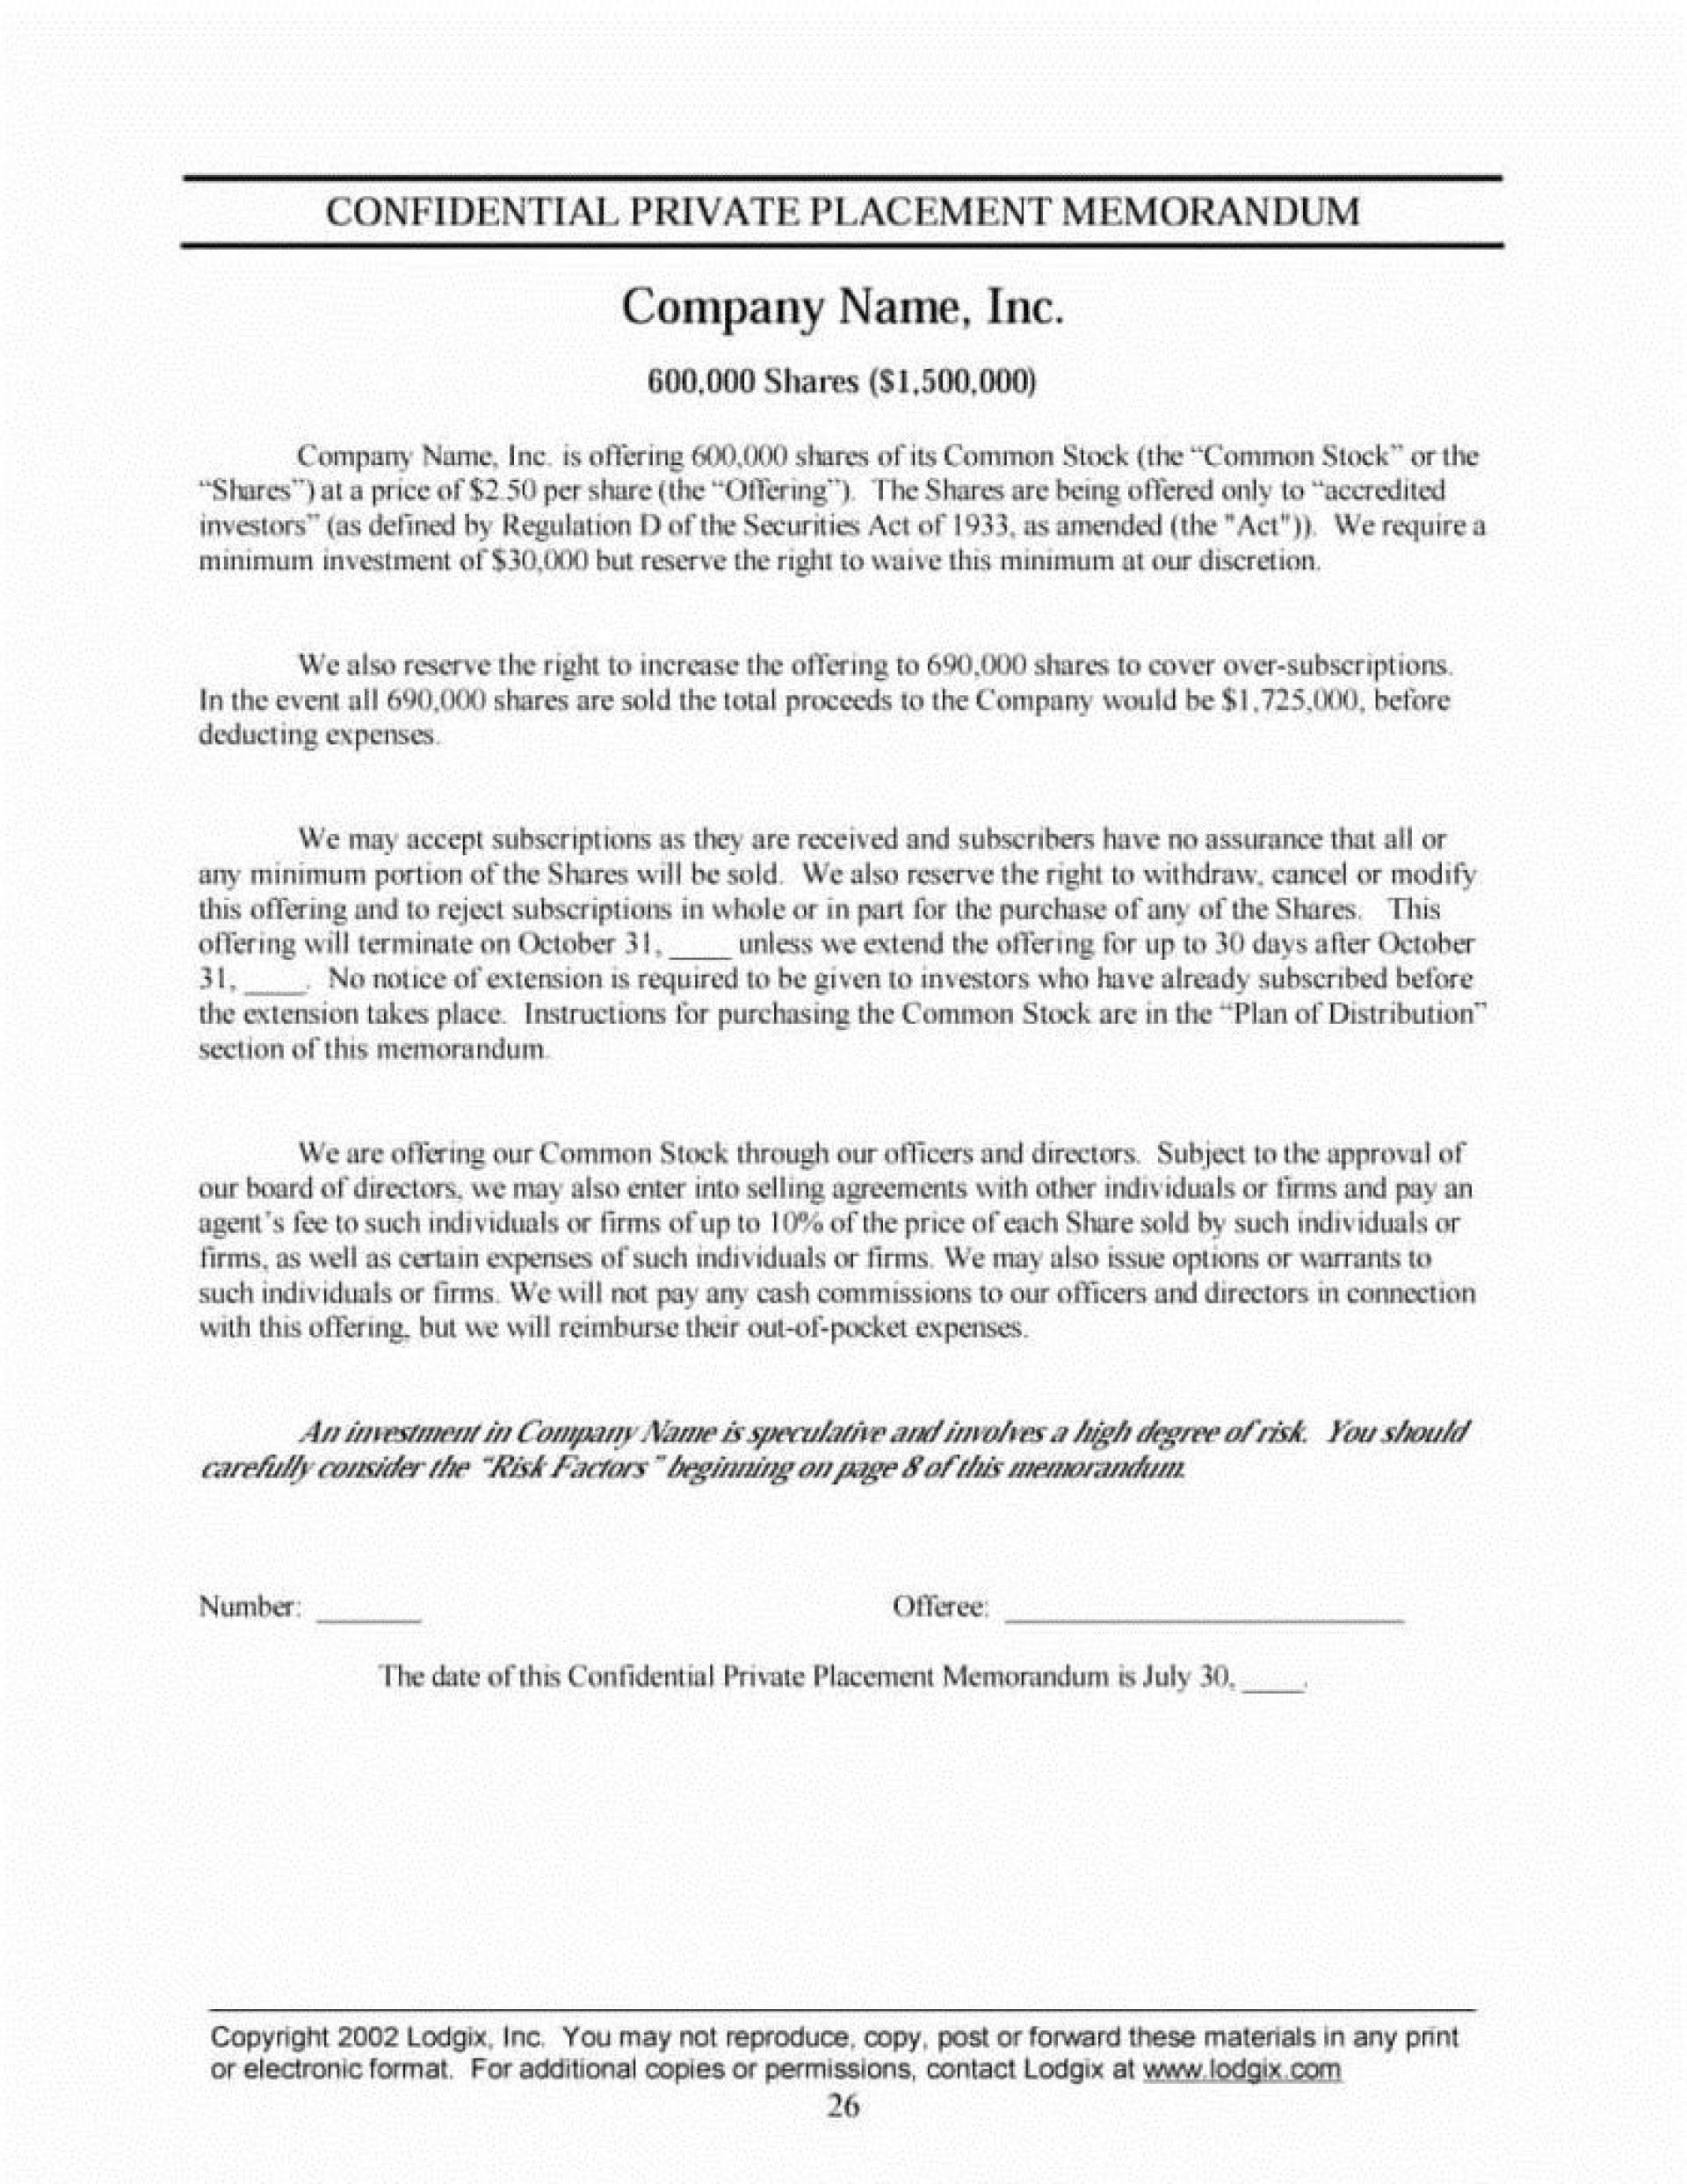 003 Stupendou Private Placement Memorandum Template Inspiration  Real Estate Singapore1920